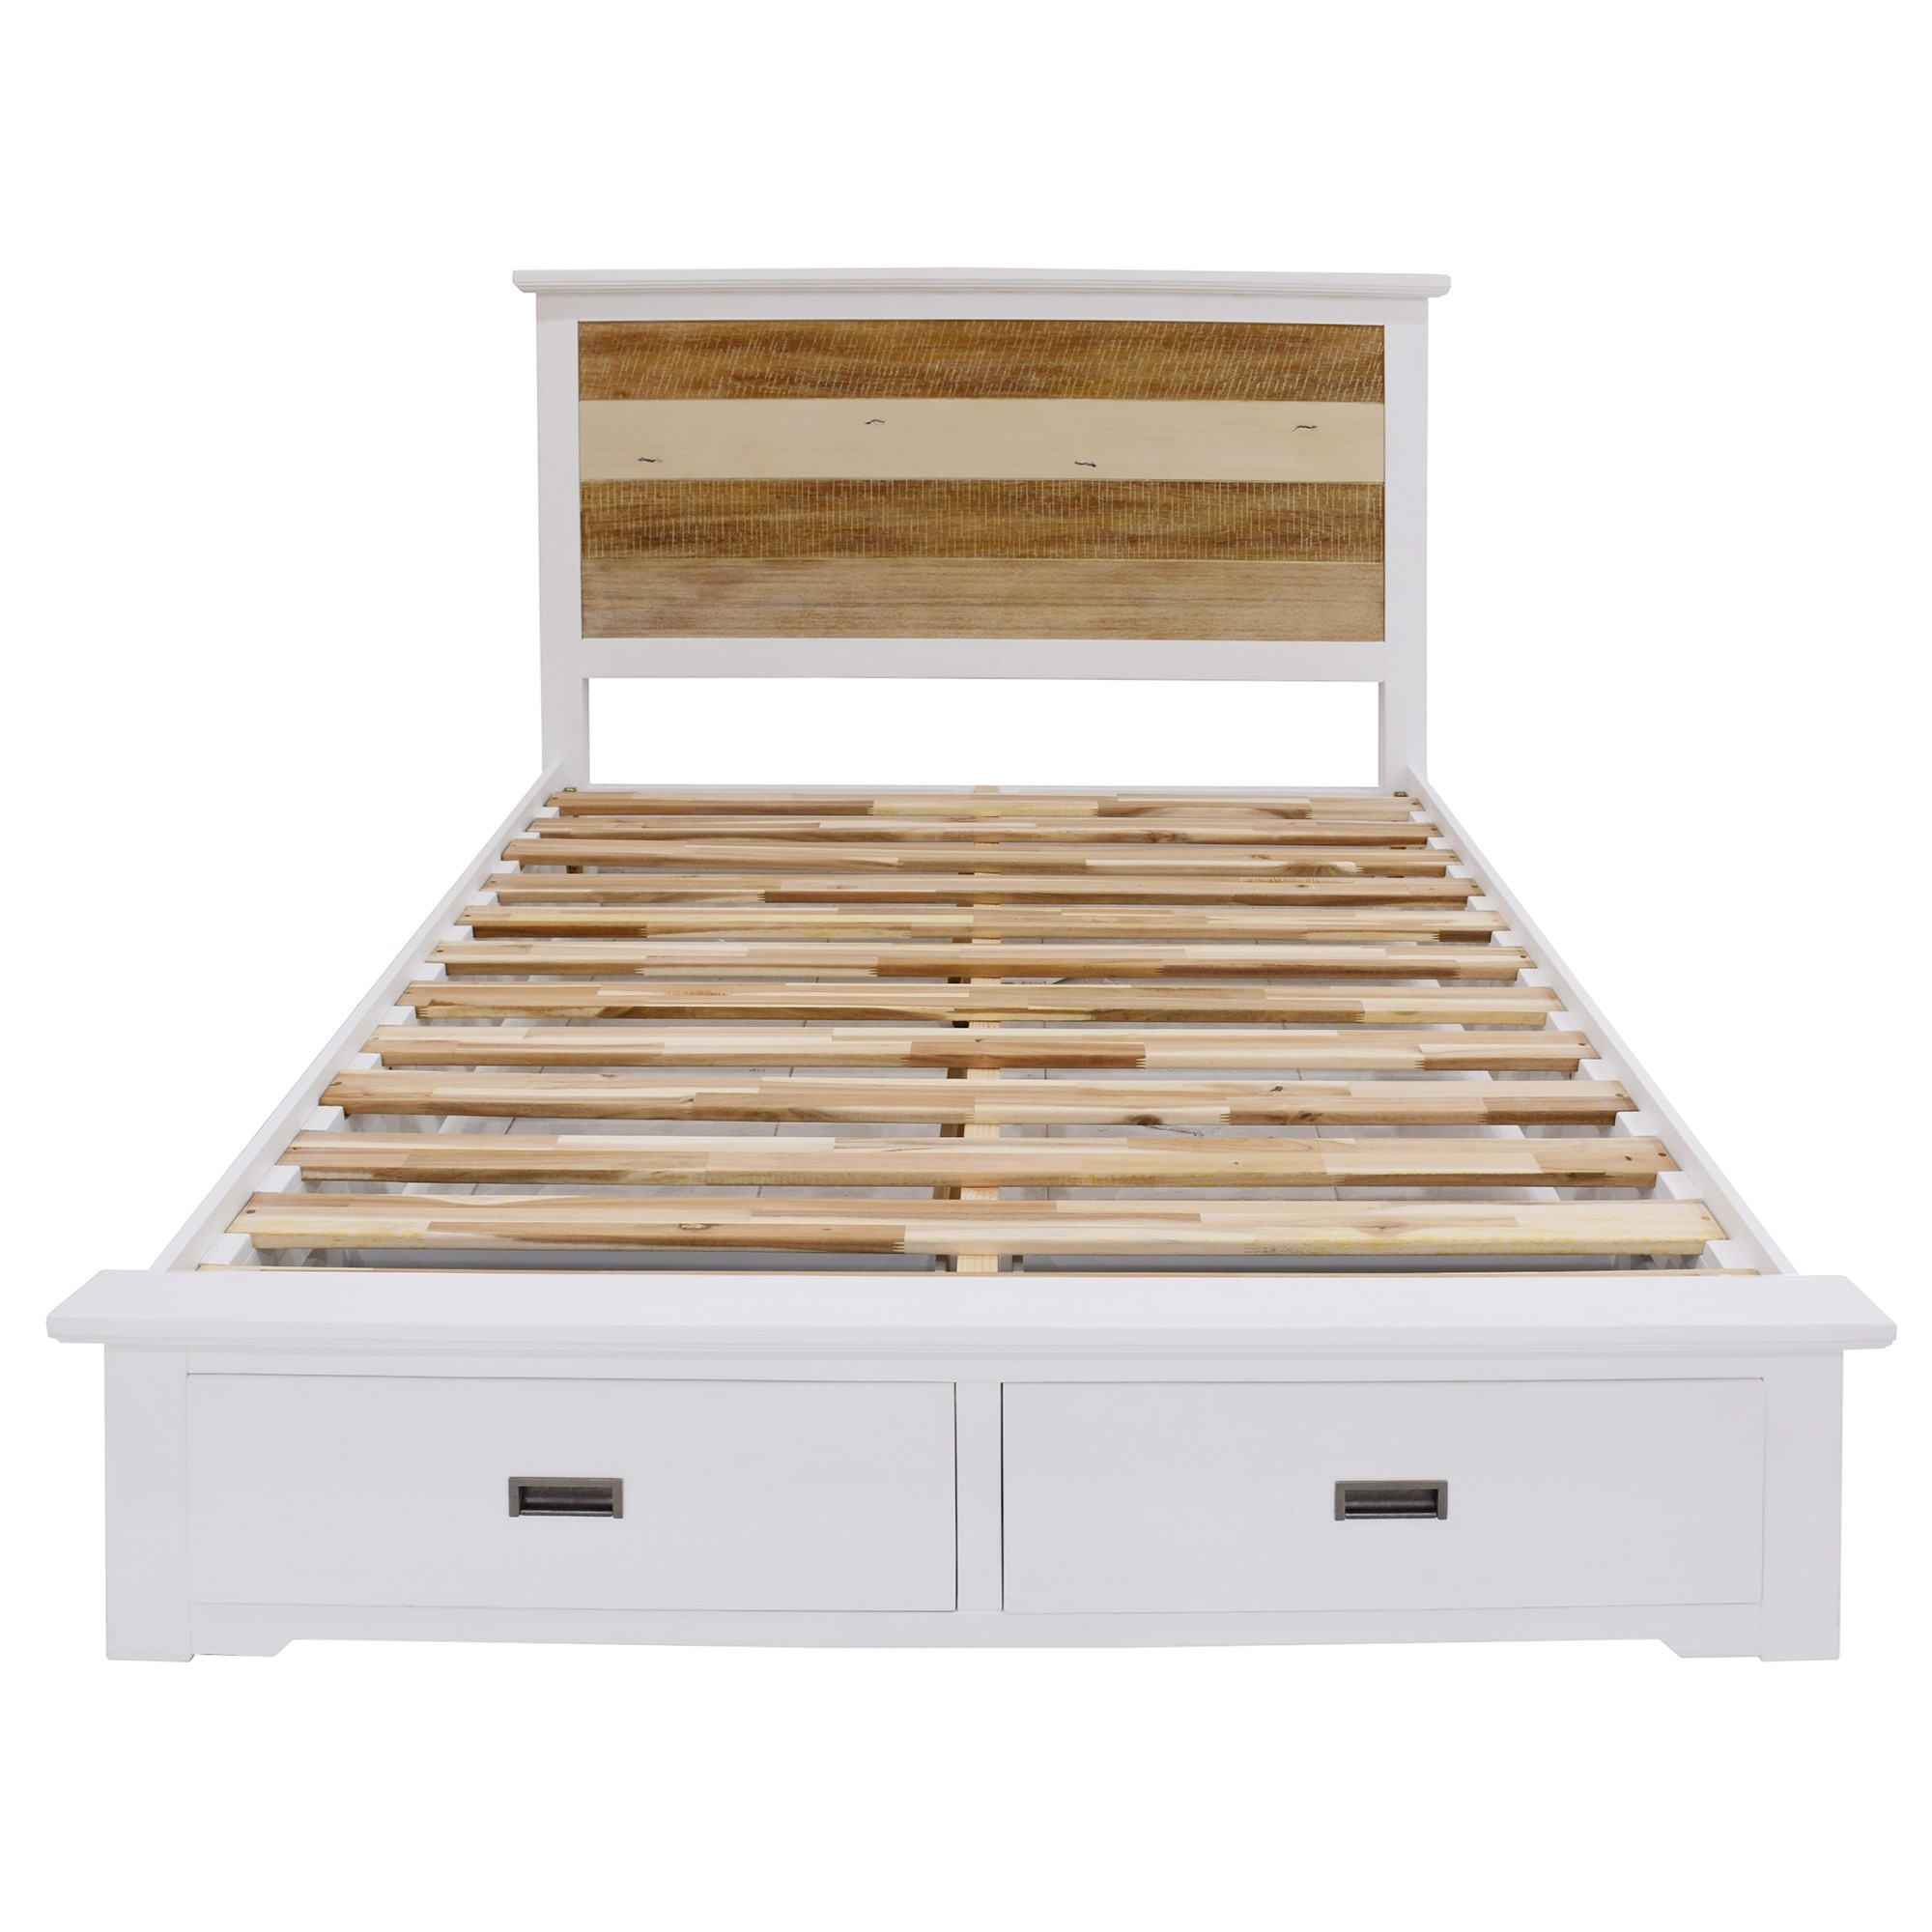 Largo Acacia Timber Bed with End Drawers, Queen